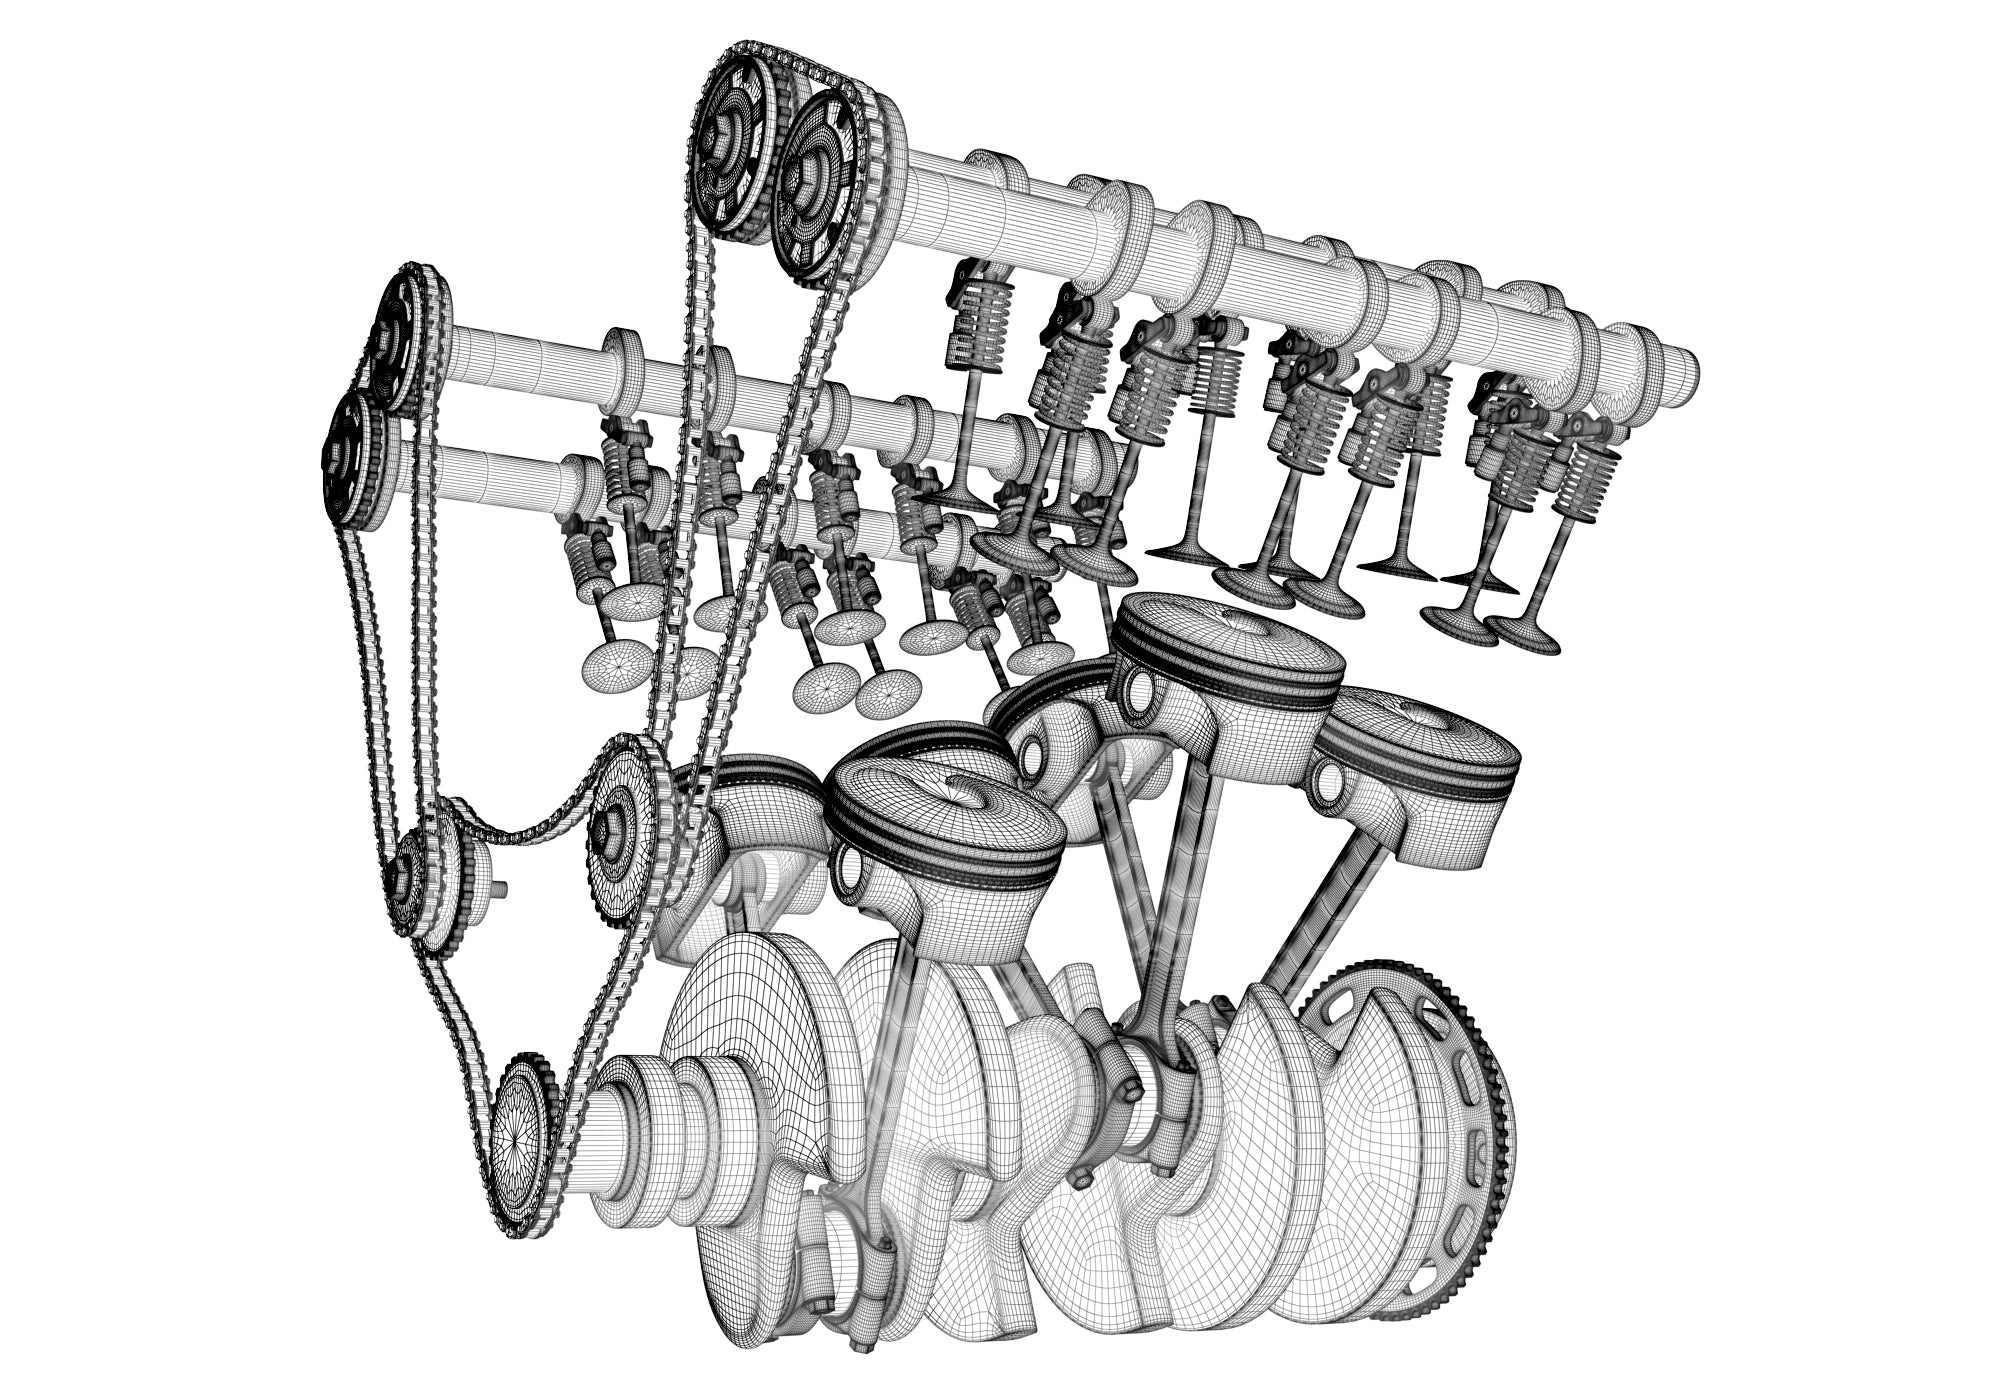 Cylinders Crankshaft Animation